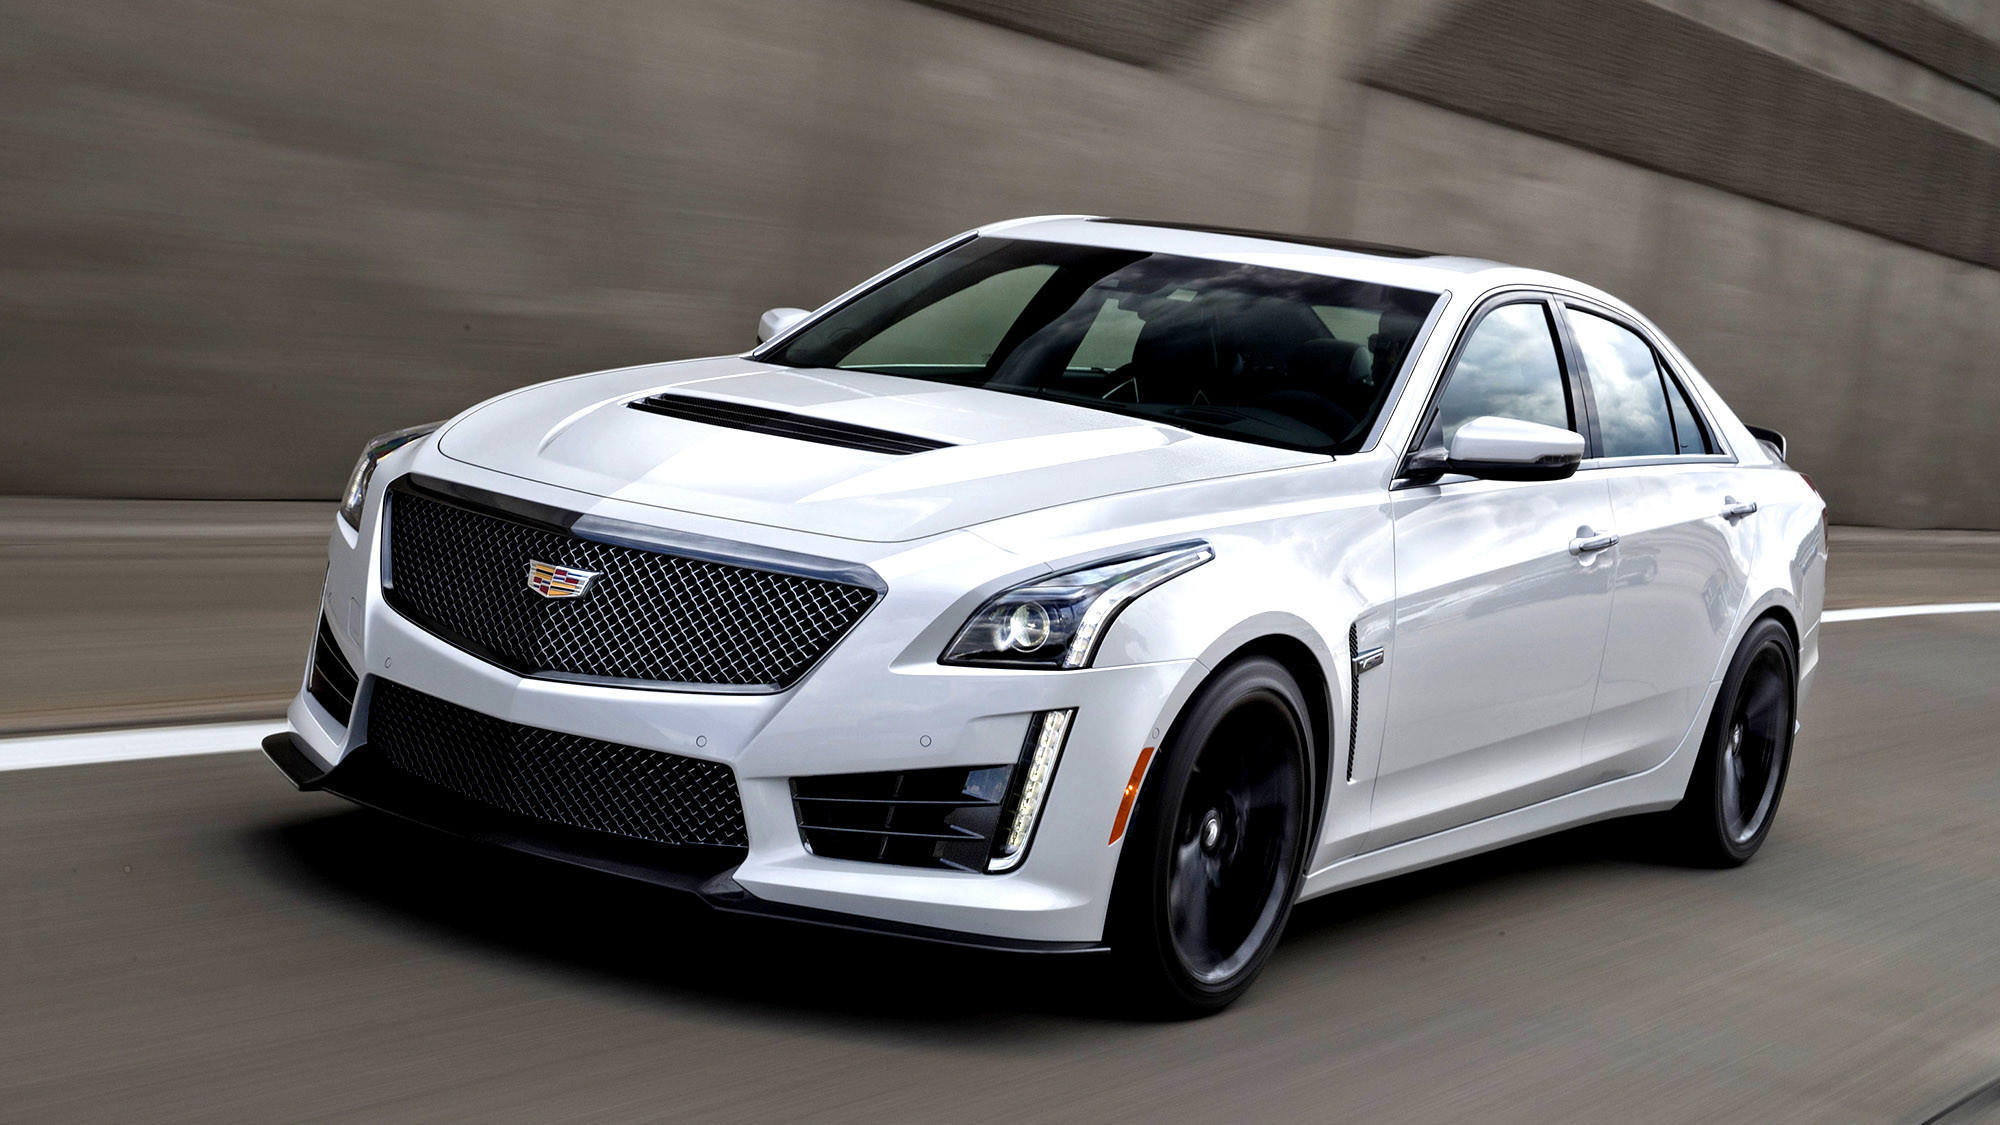 cadillac 39 s cts v is a high end hooligan that doubles as a daily driver la times. Black Bedroom Furniture Sets. Home Design Ideas